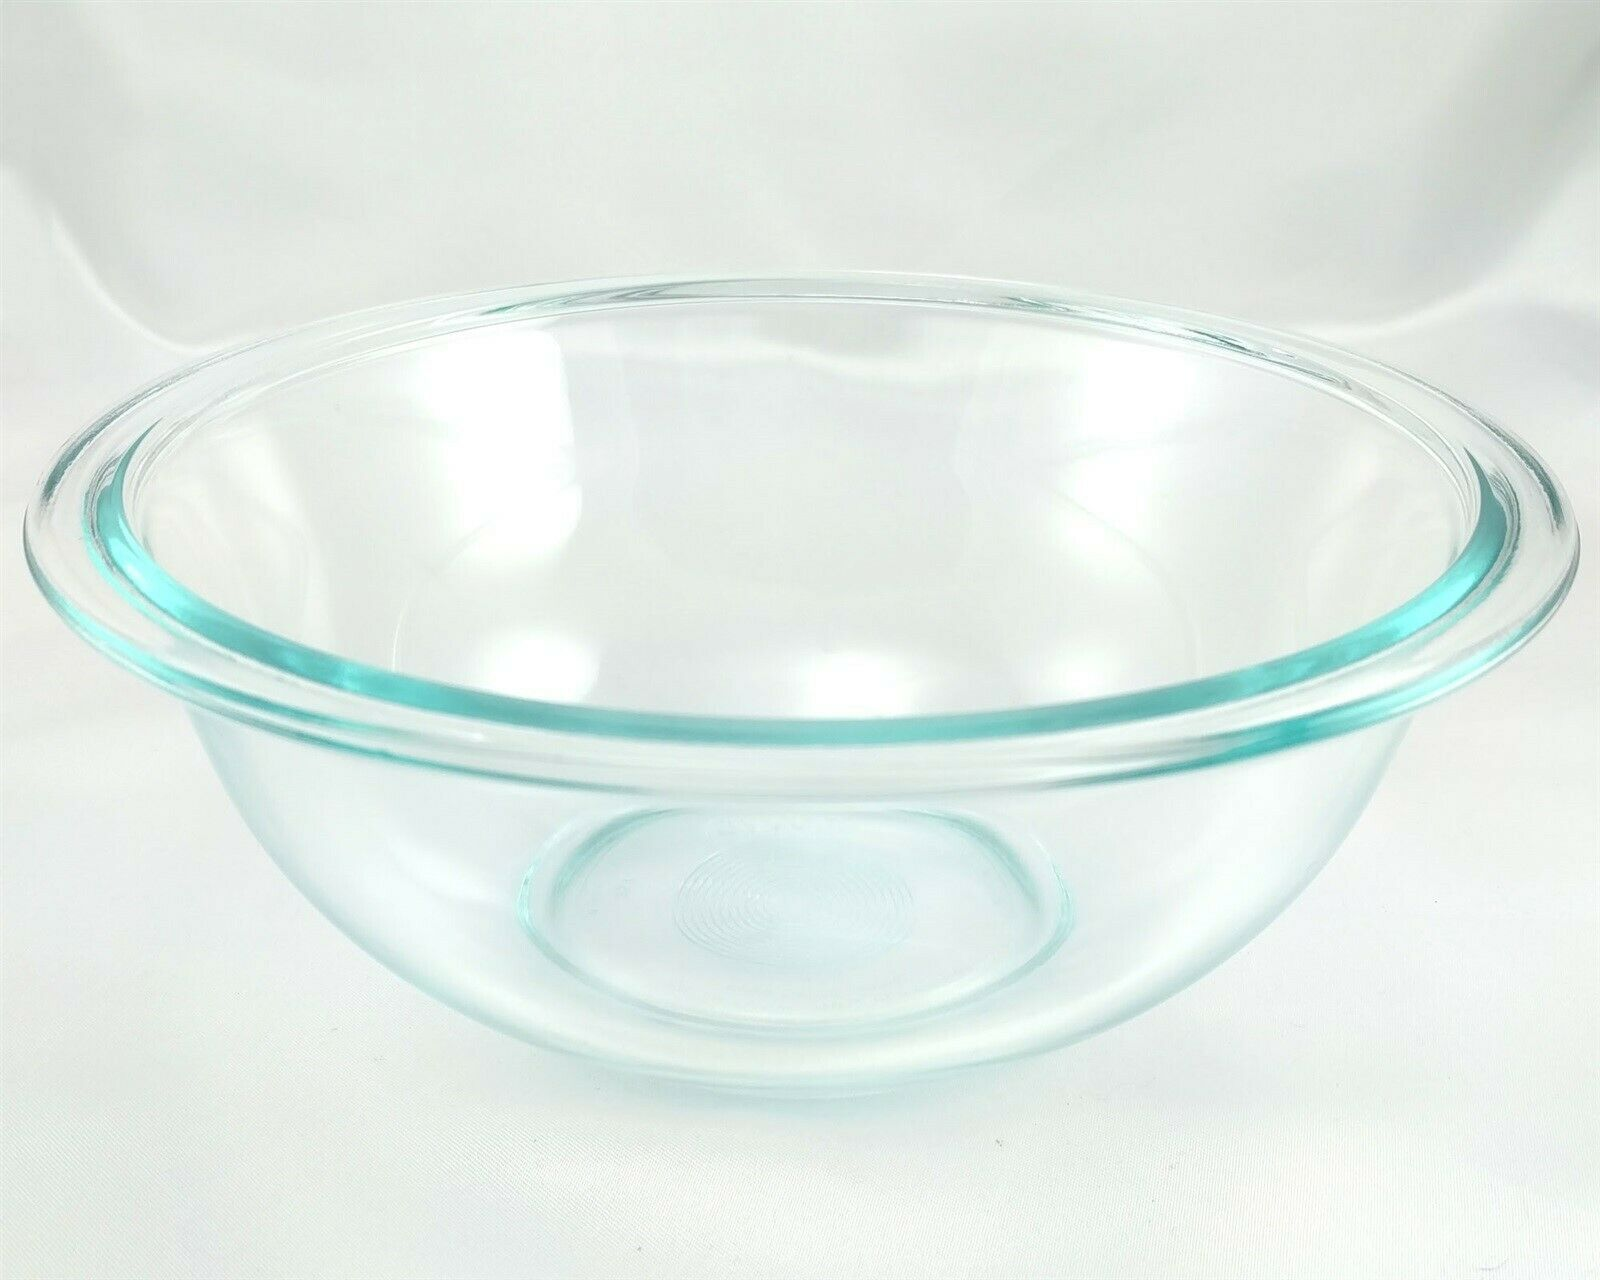 Pyrex 323 Blue Tint Mixing Serving Bowl 1½ Qt Extended Rim Made in the USA image 2